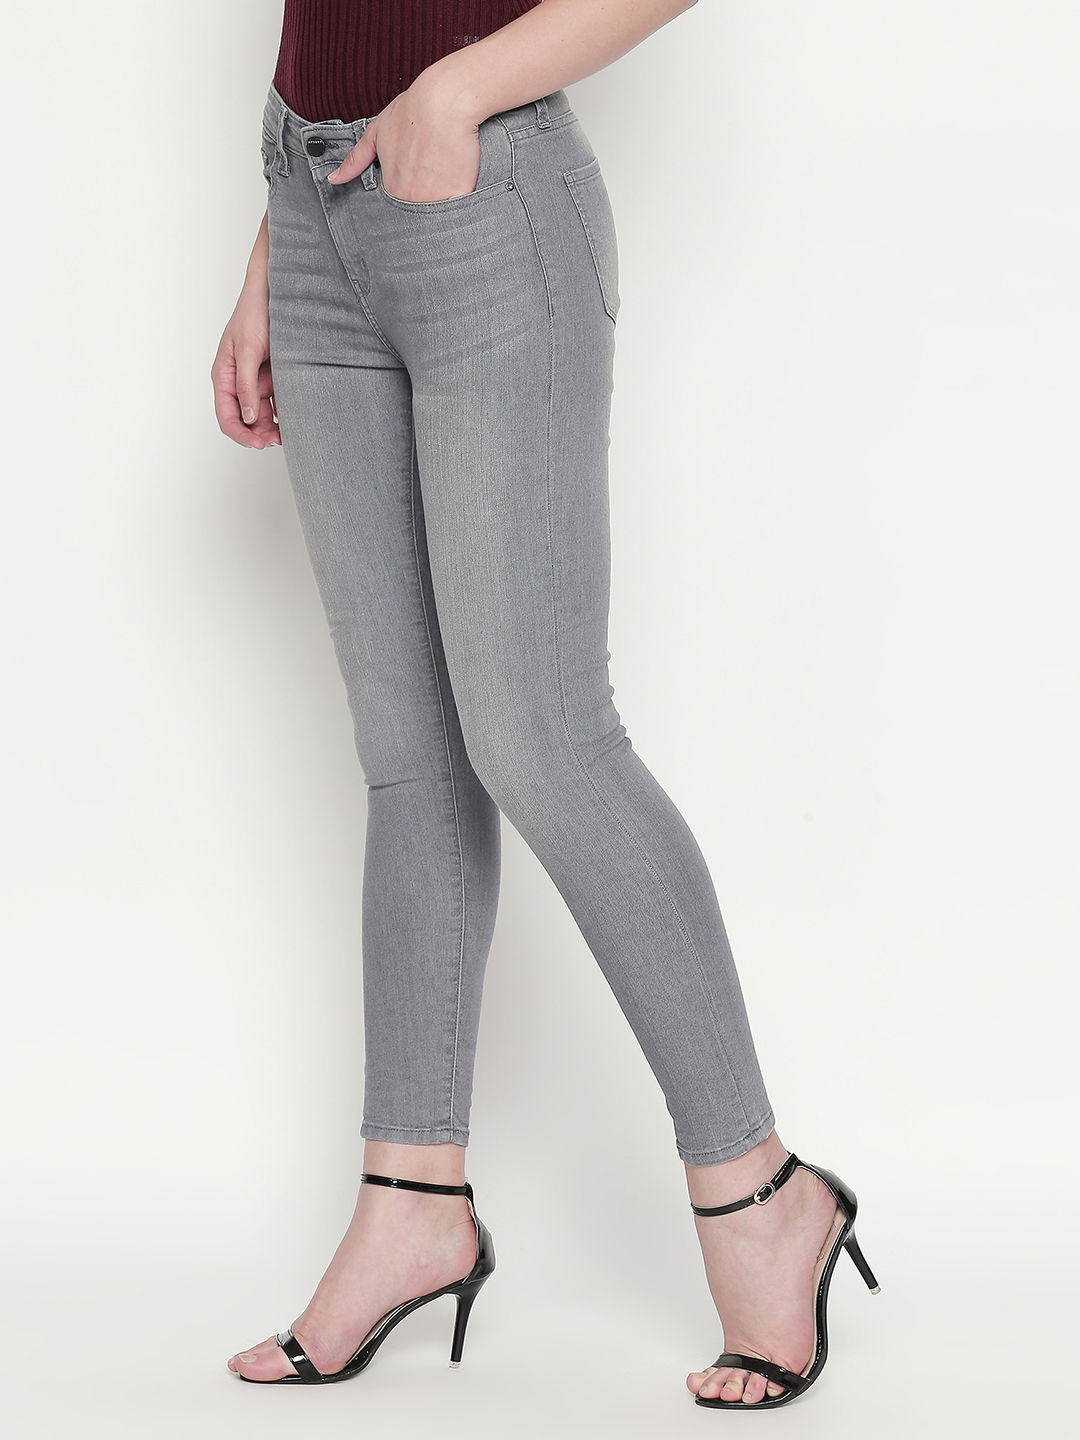 Grey Solid Slim Fit Jeans